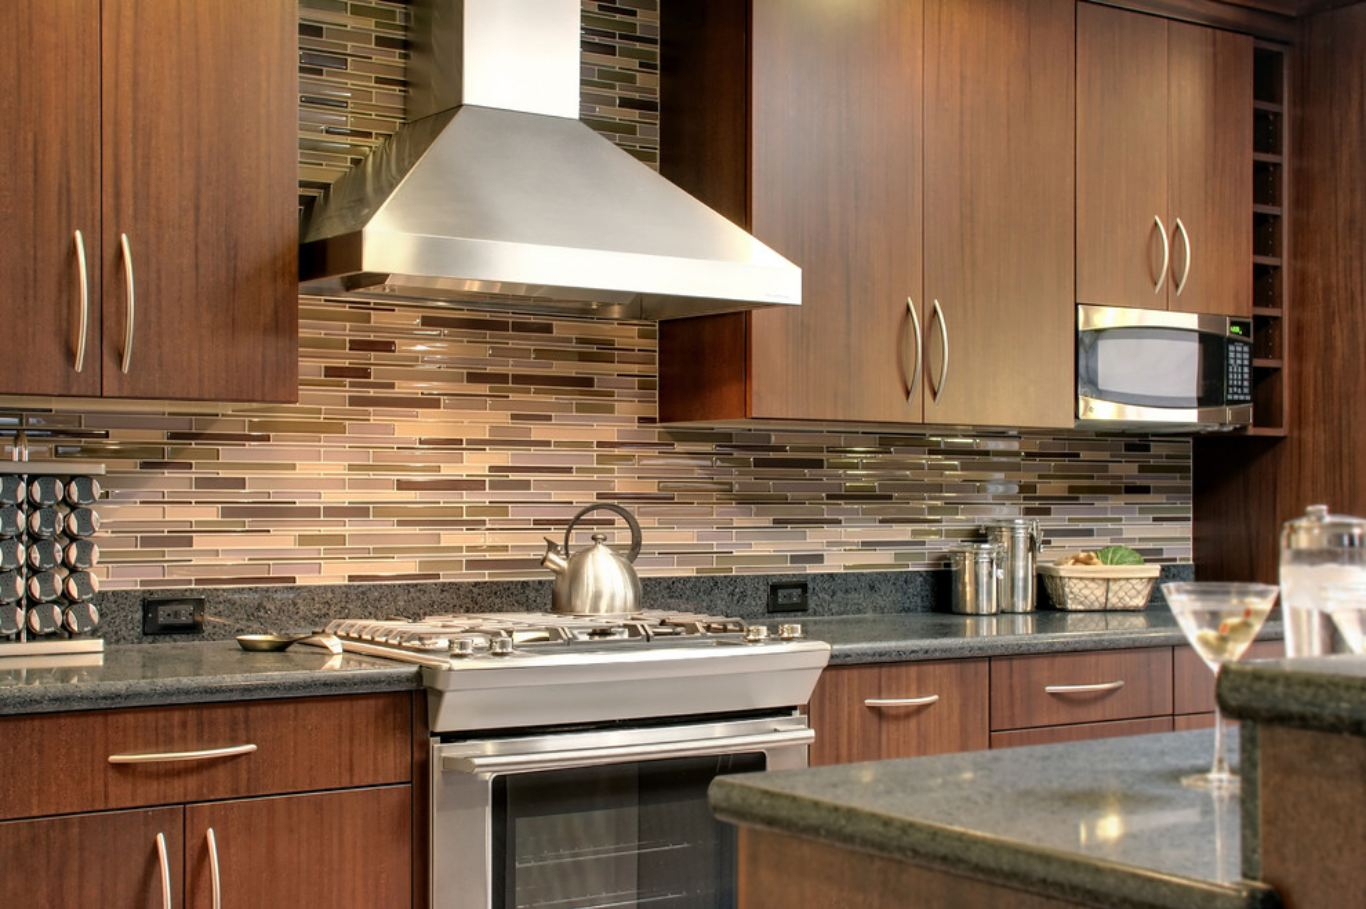 Brown glass tile designs for backsplash custom home design Tan kitchen backsplash